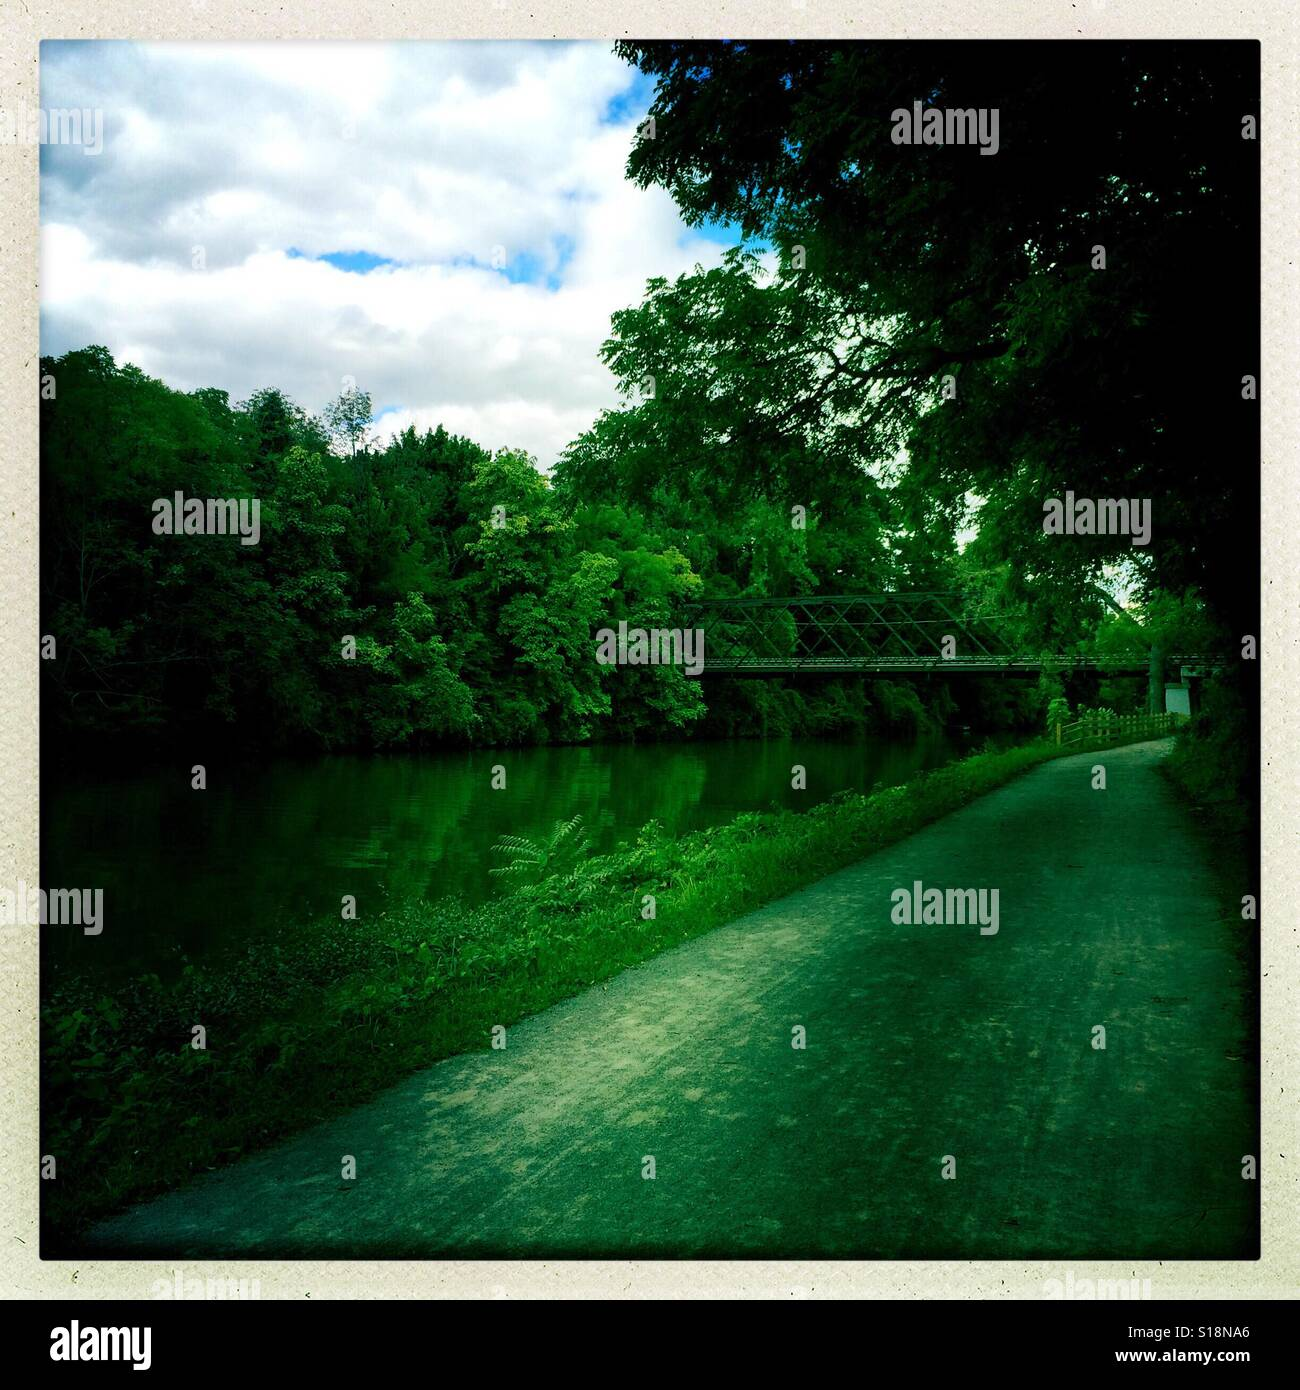 The Erie Canal Towpath running through Pittsford, New York - Stock Image